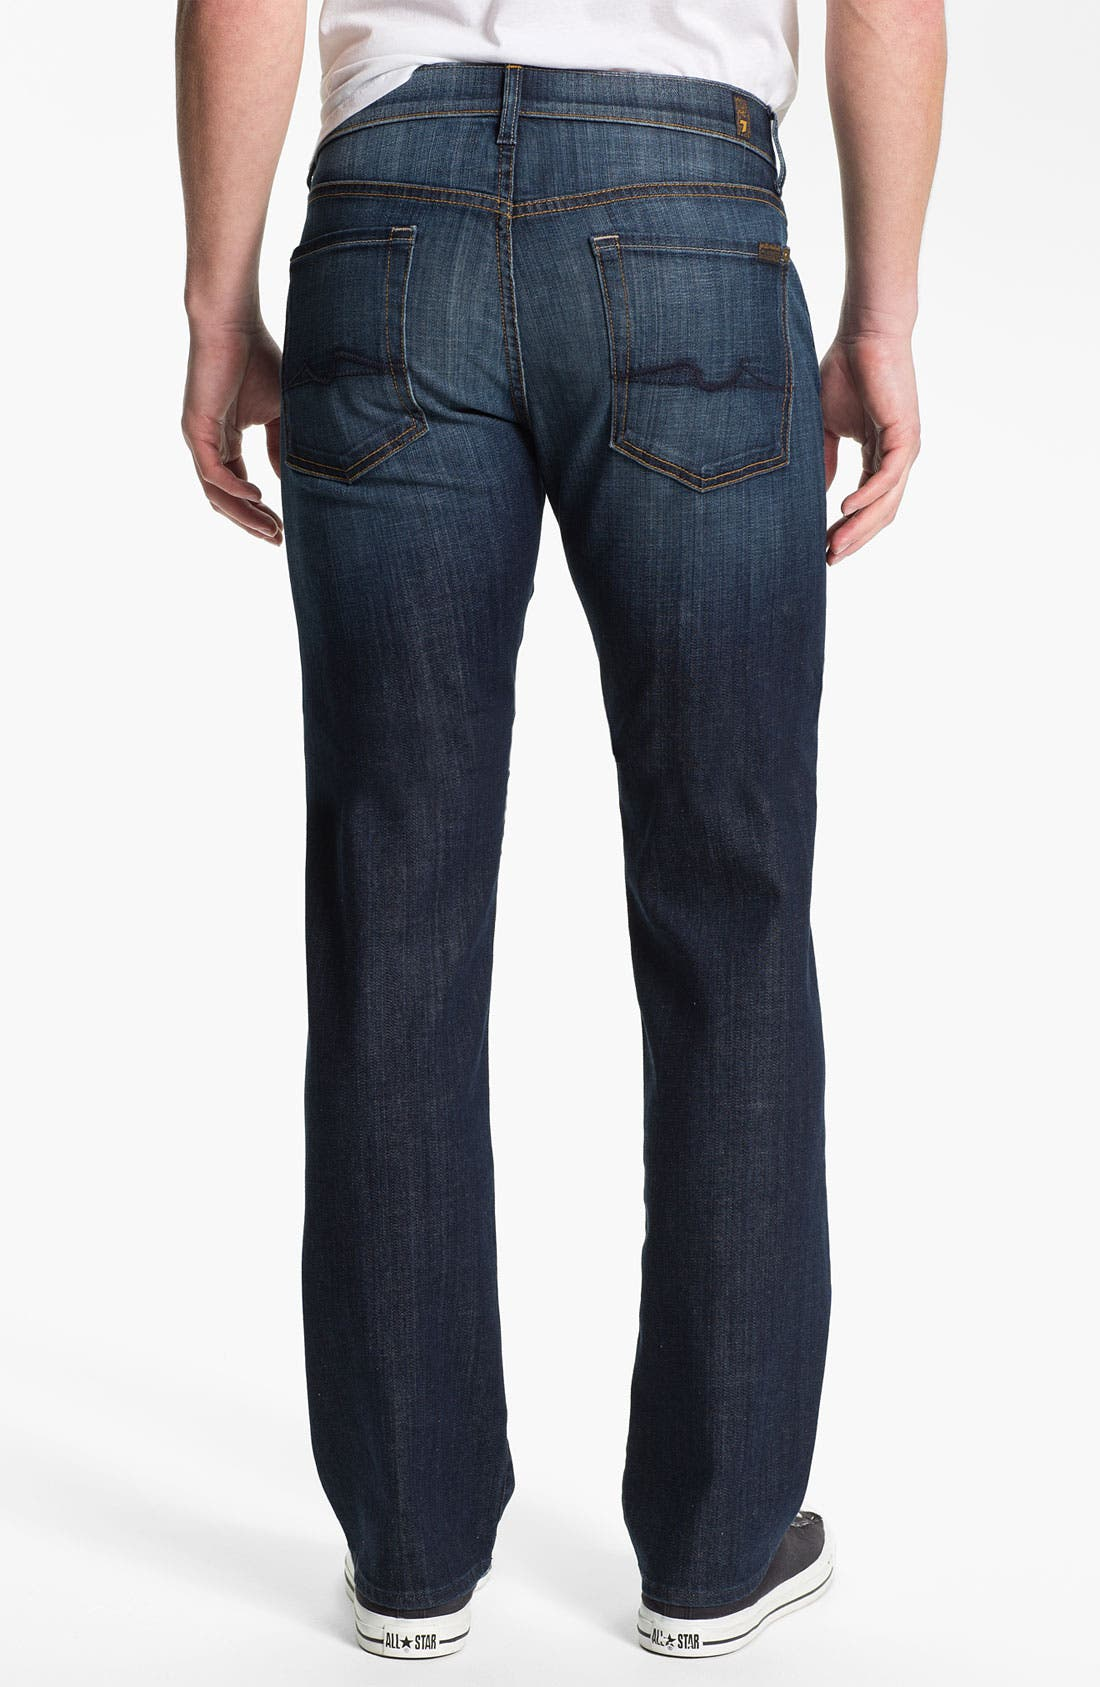 Alternate Image 1 Selected - 7 For All Mankind® 'Standard' Straight Leg Jeans (Worn L.A. Dark)